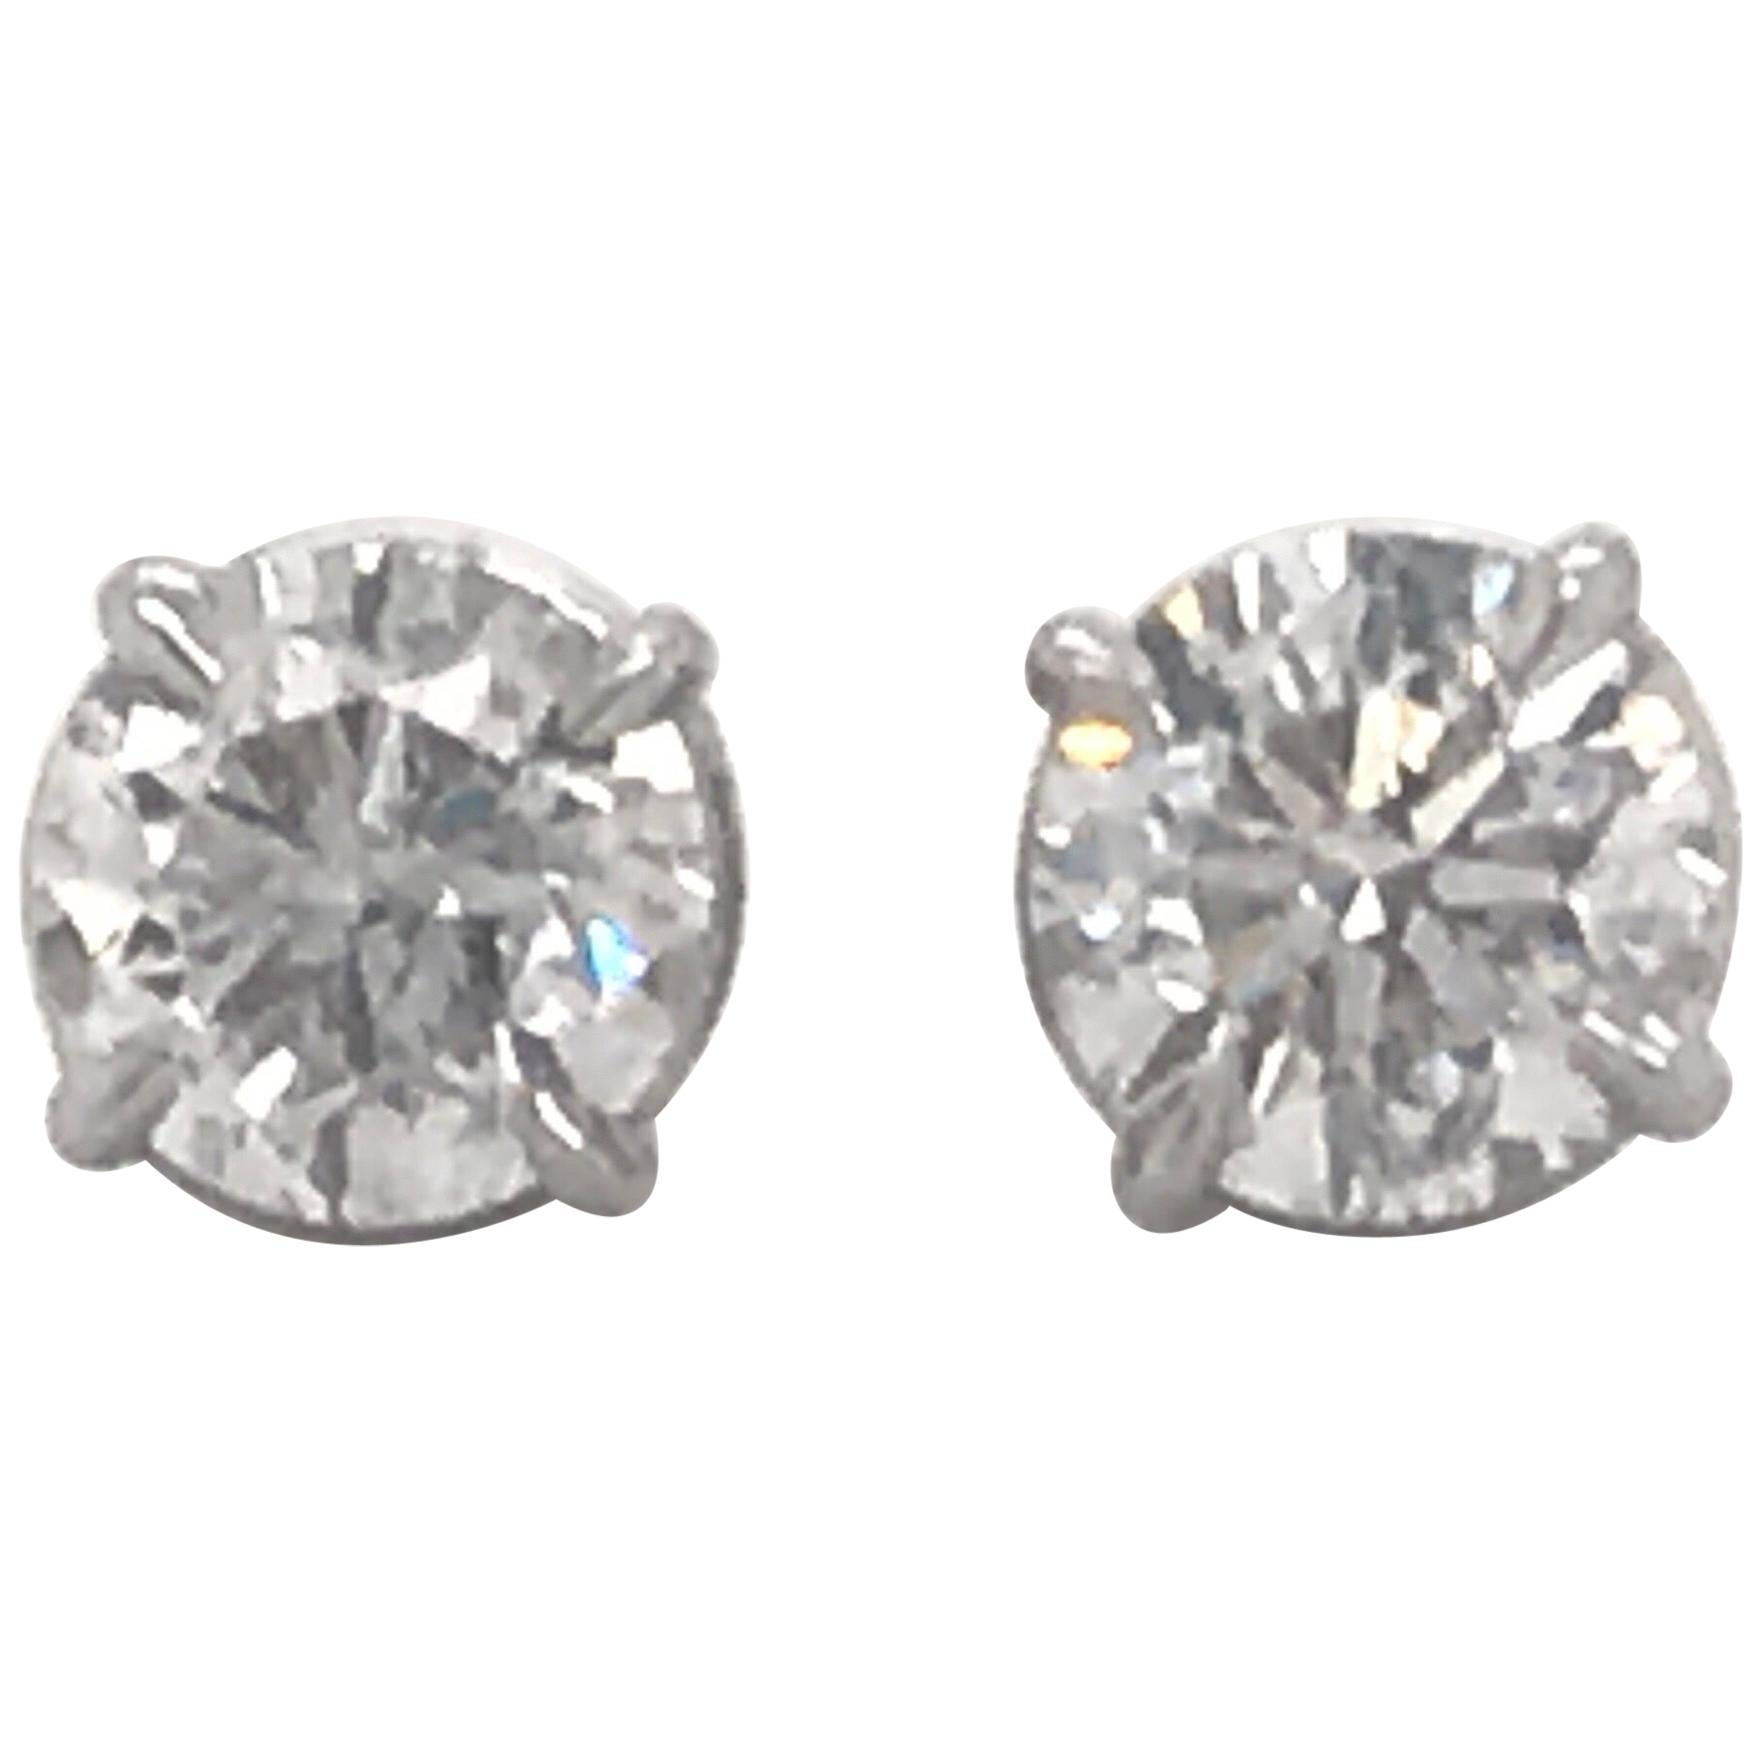 0f4840f2290da5 Diamond, Antique and Vintage Earrings - 21,566 For Sale at 1stdibs